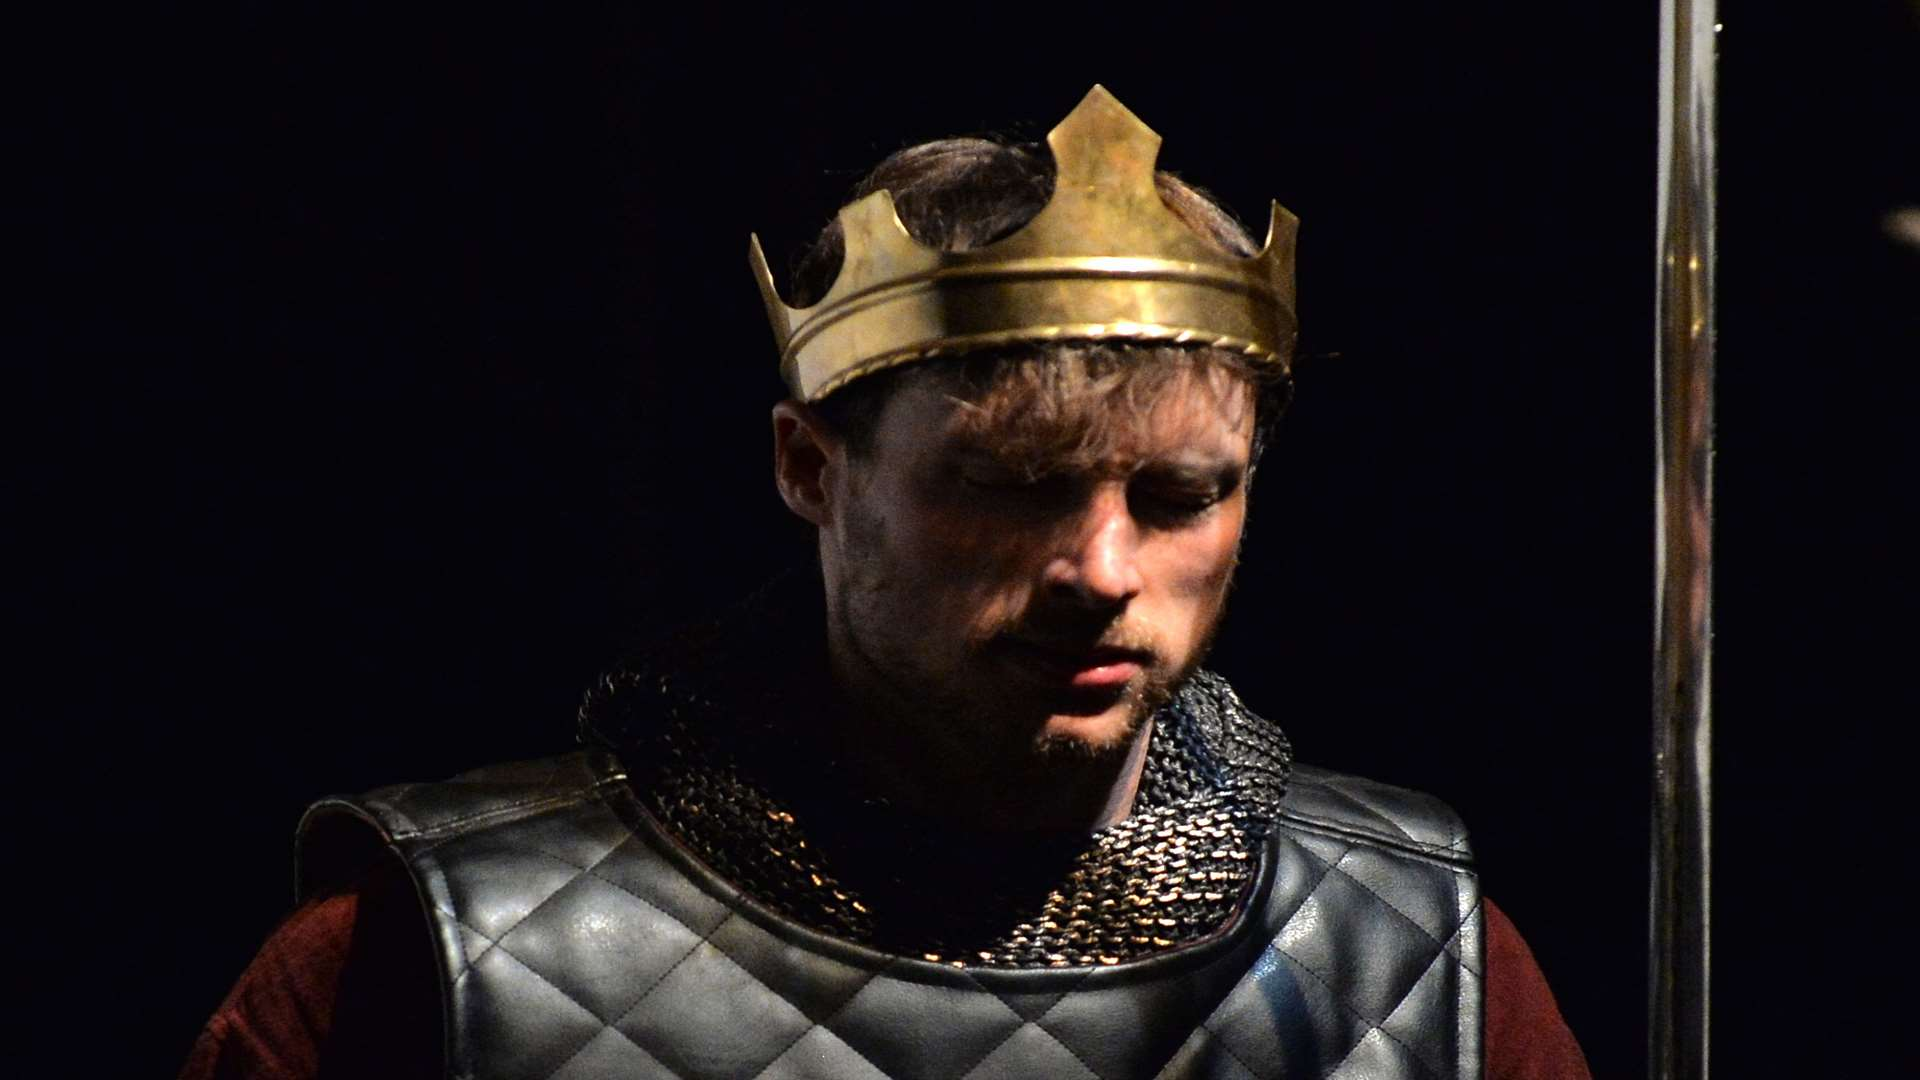 Watch an adaptation of King Arthur by Michael Morpurgo at the EM Forster Theatre